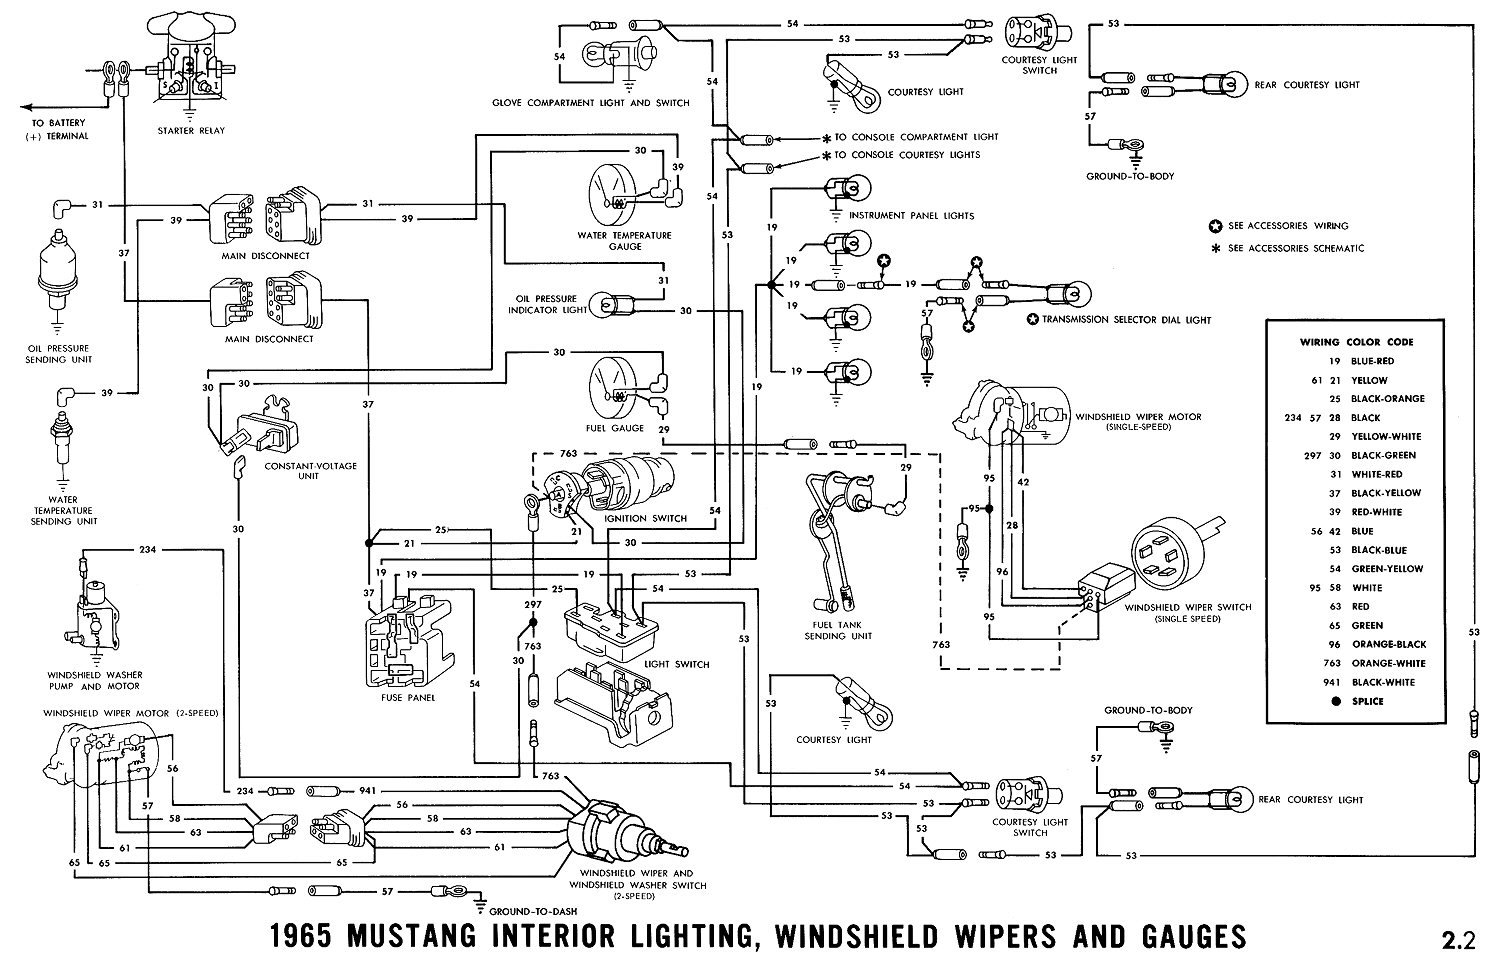 354697d1402370433 1970 mustang installing new radiator no temperature sensor interior lighting gauges wiring diagram for 1972 ford f100 the wiring diagram  at n-0.co